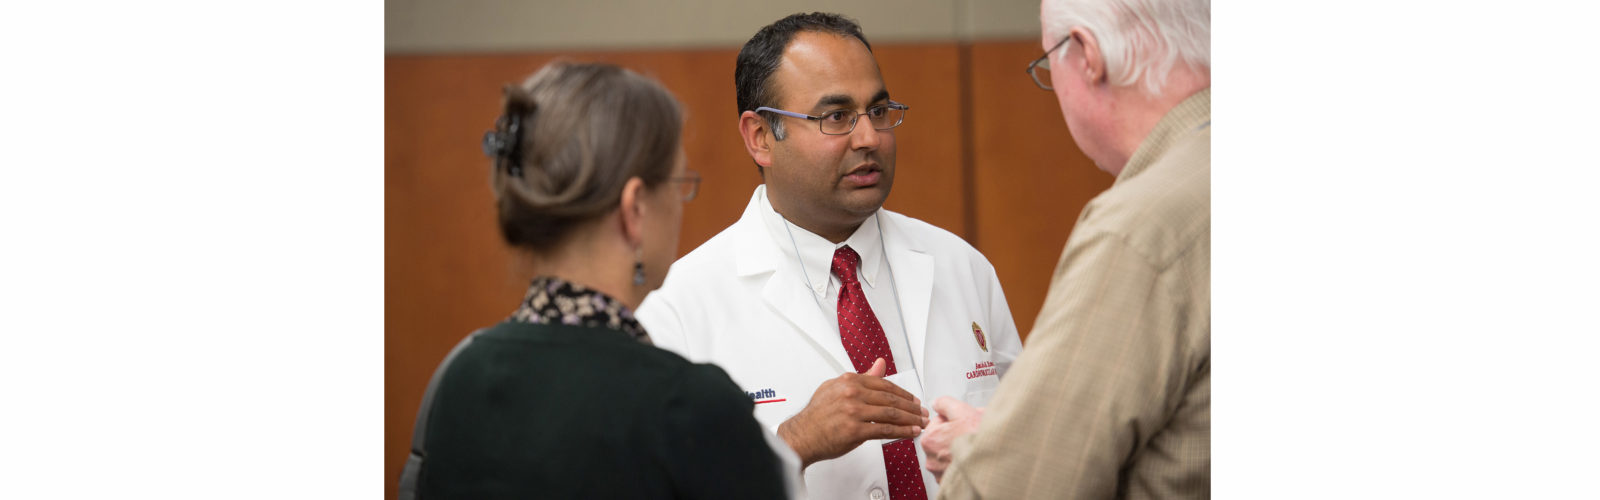 Dr. Amish Raval talking to a man and a woman at a lecture